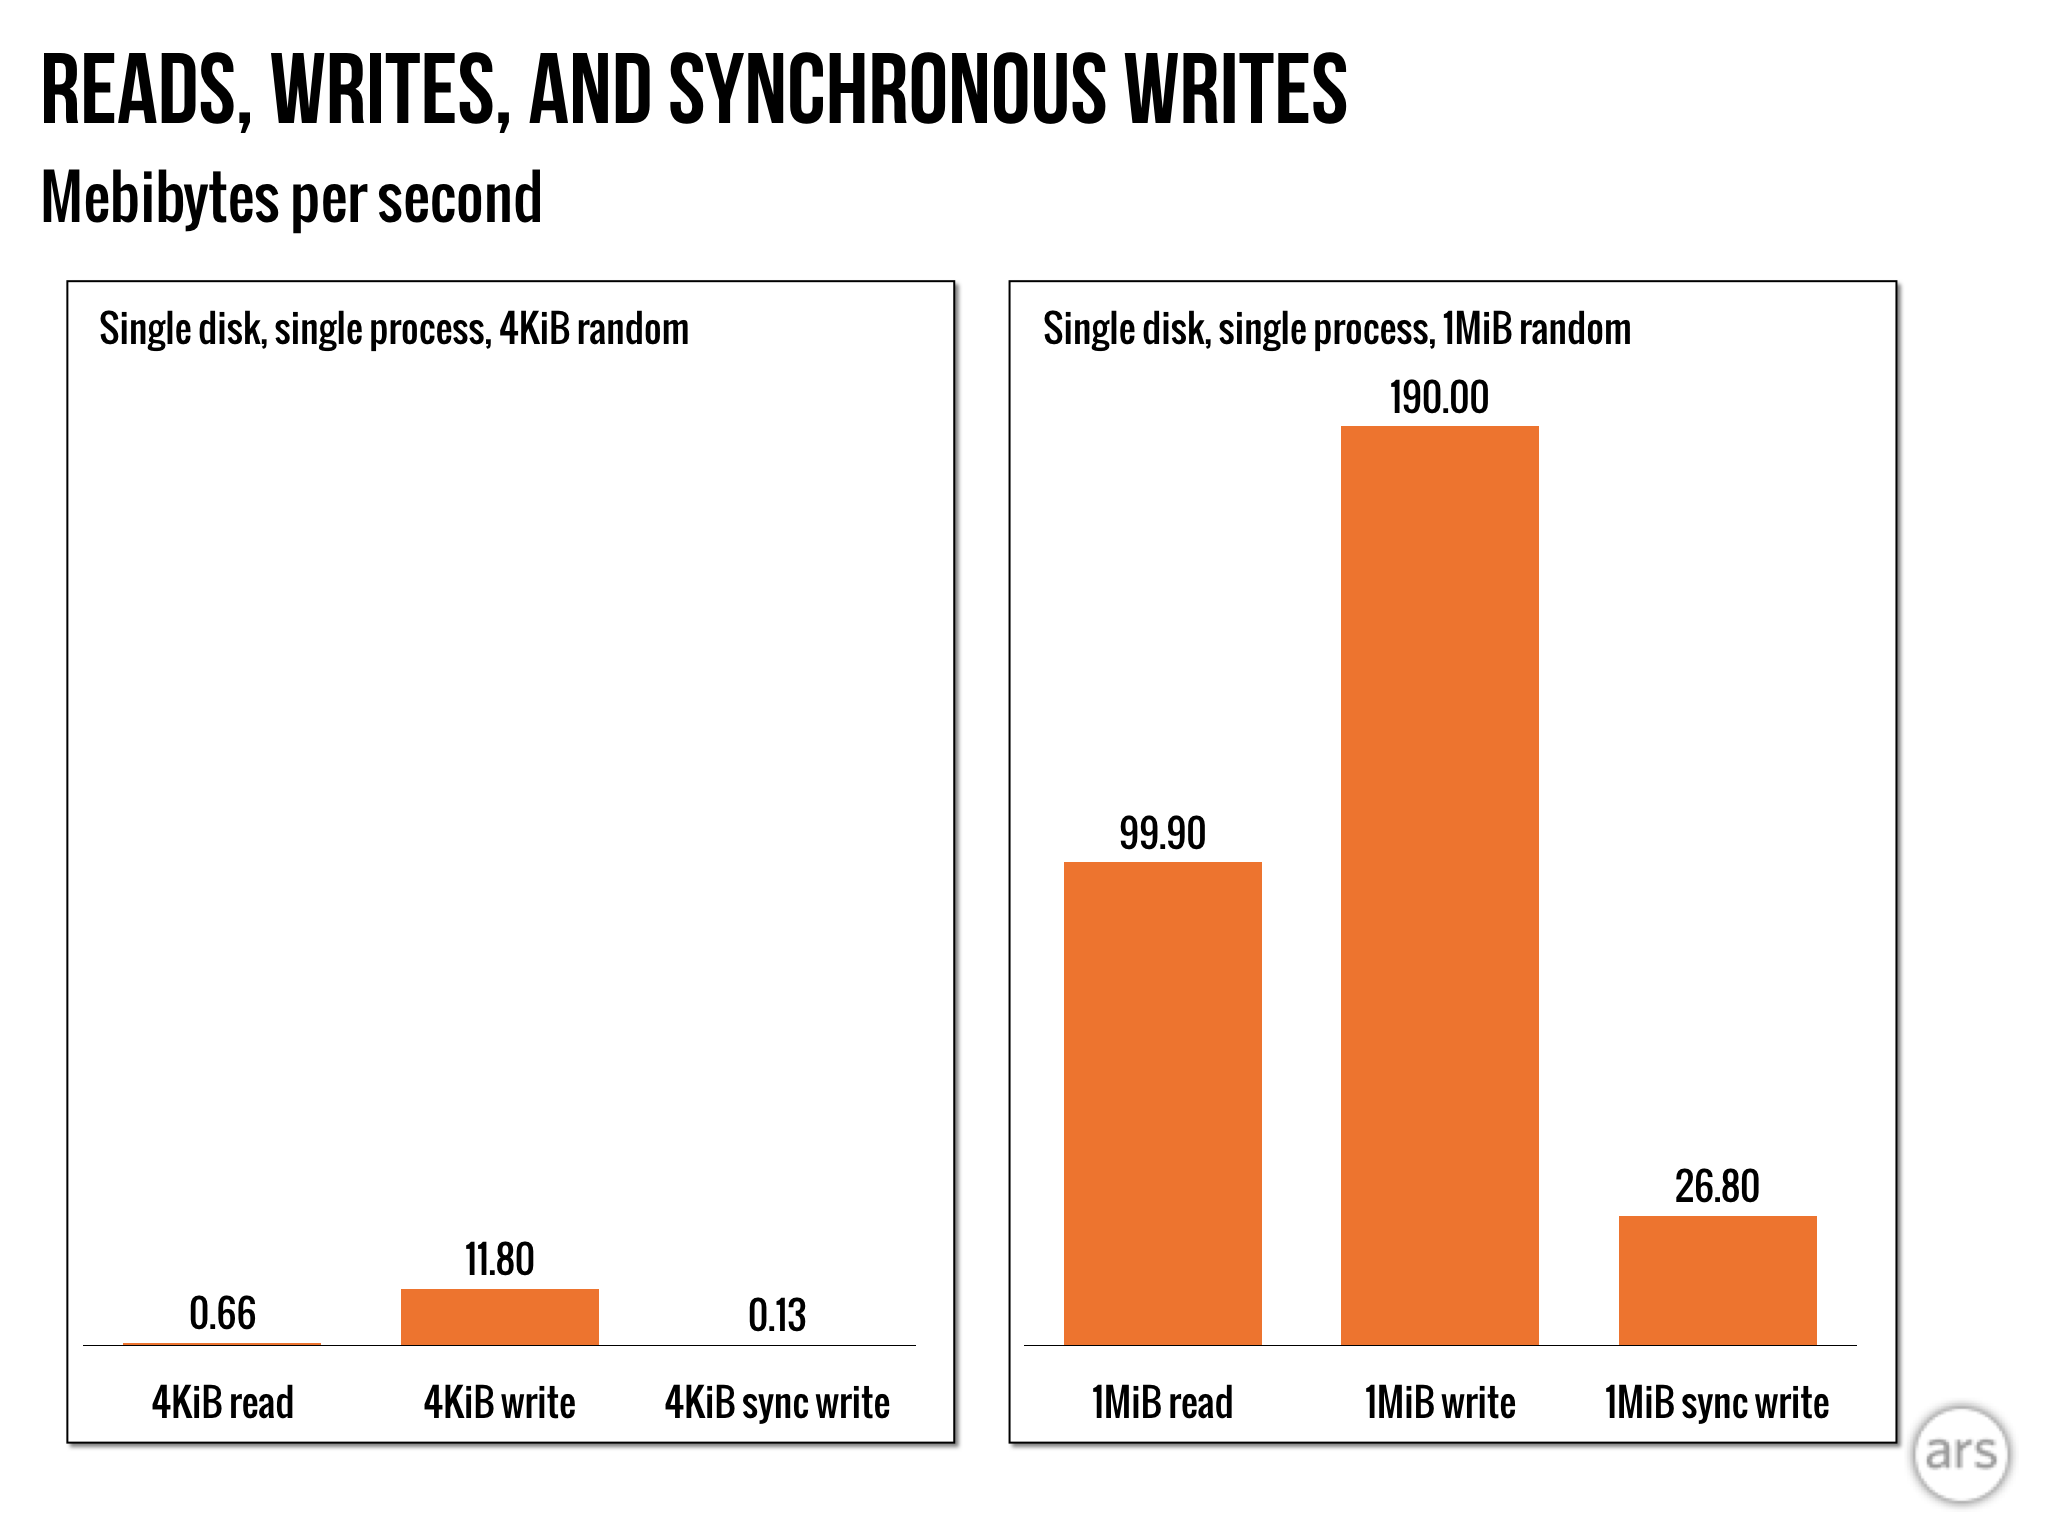 On this Seagate Ironwolf NAS disk, sync writes are an order of magnitude slower than async. OptiNAND should do away with the majority of that performance bottleneck.